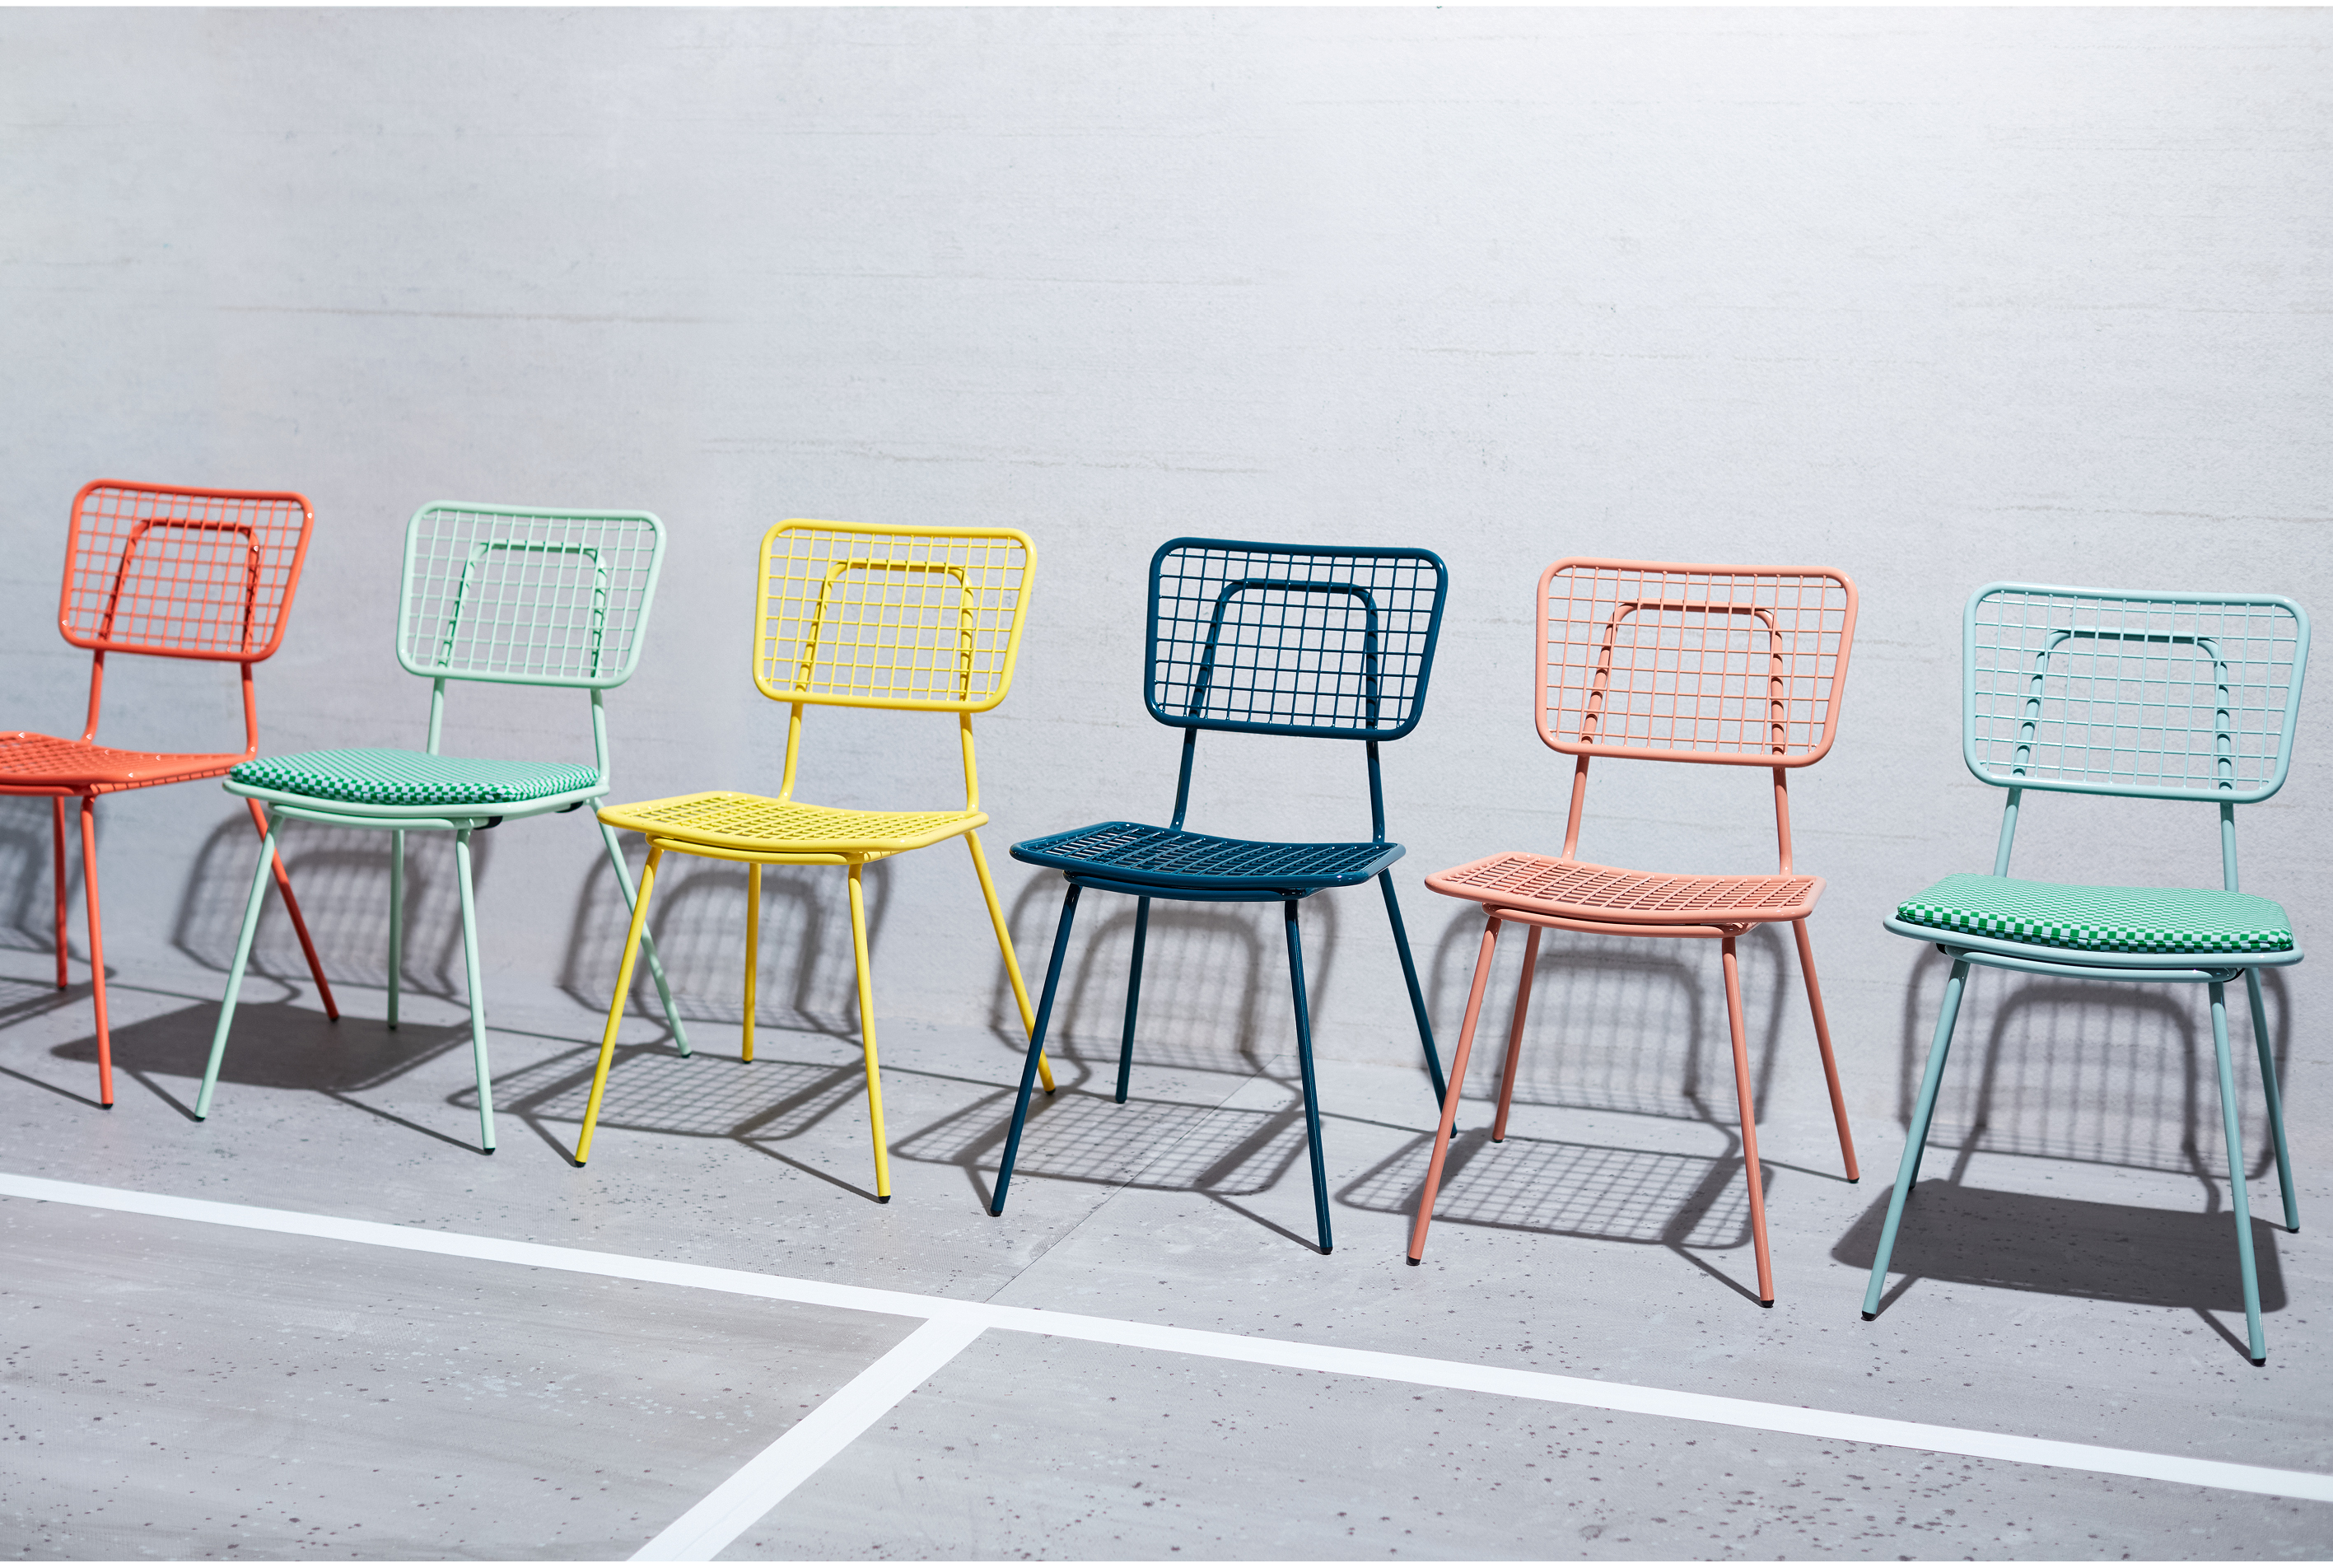 Opla Outdoor Chairs for restaurant-1